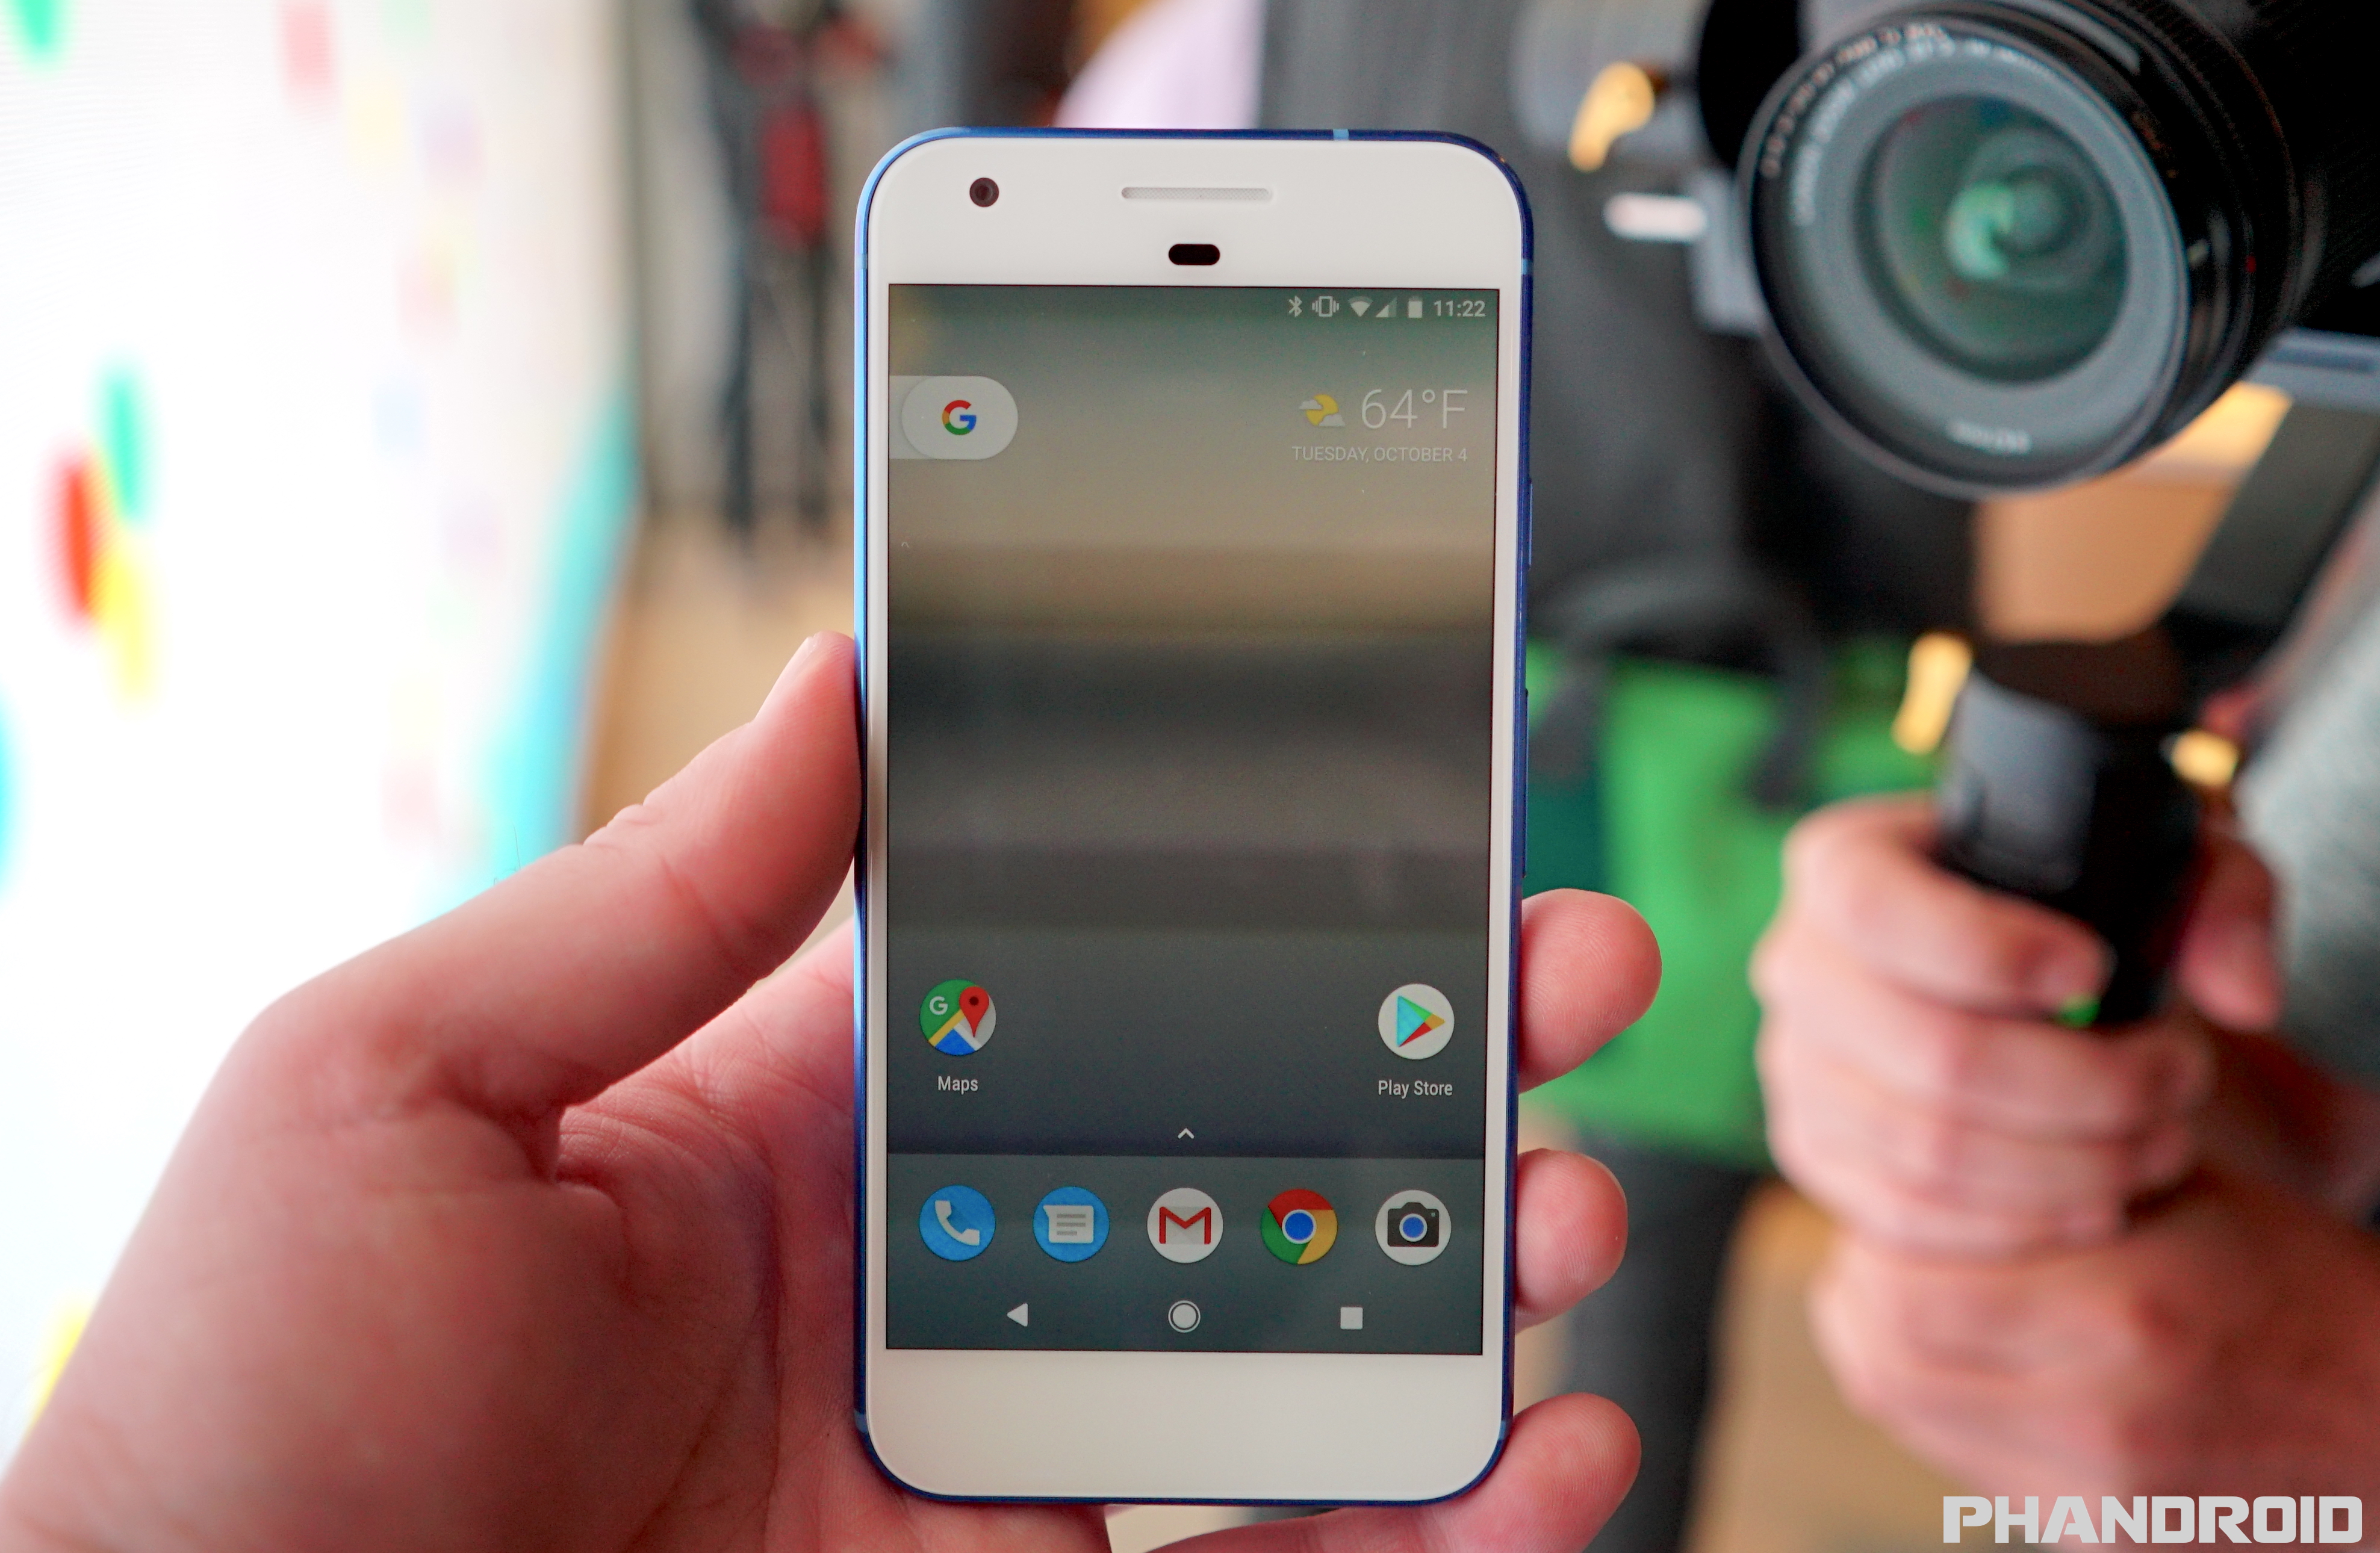 The new Pixel dialer app works on some Android 6 0+ phones